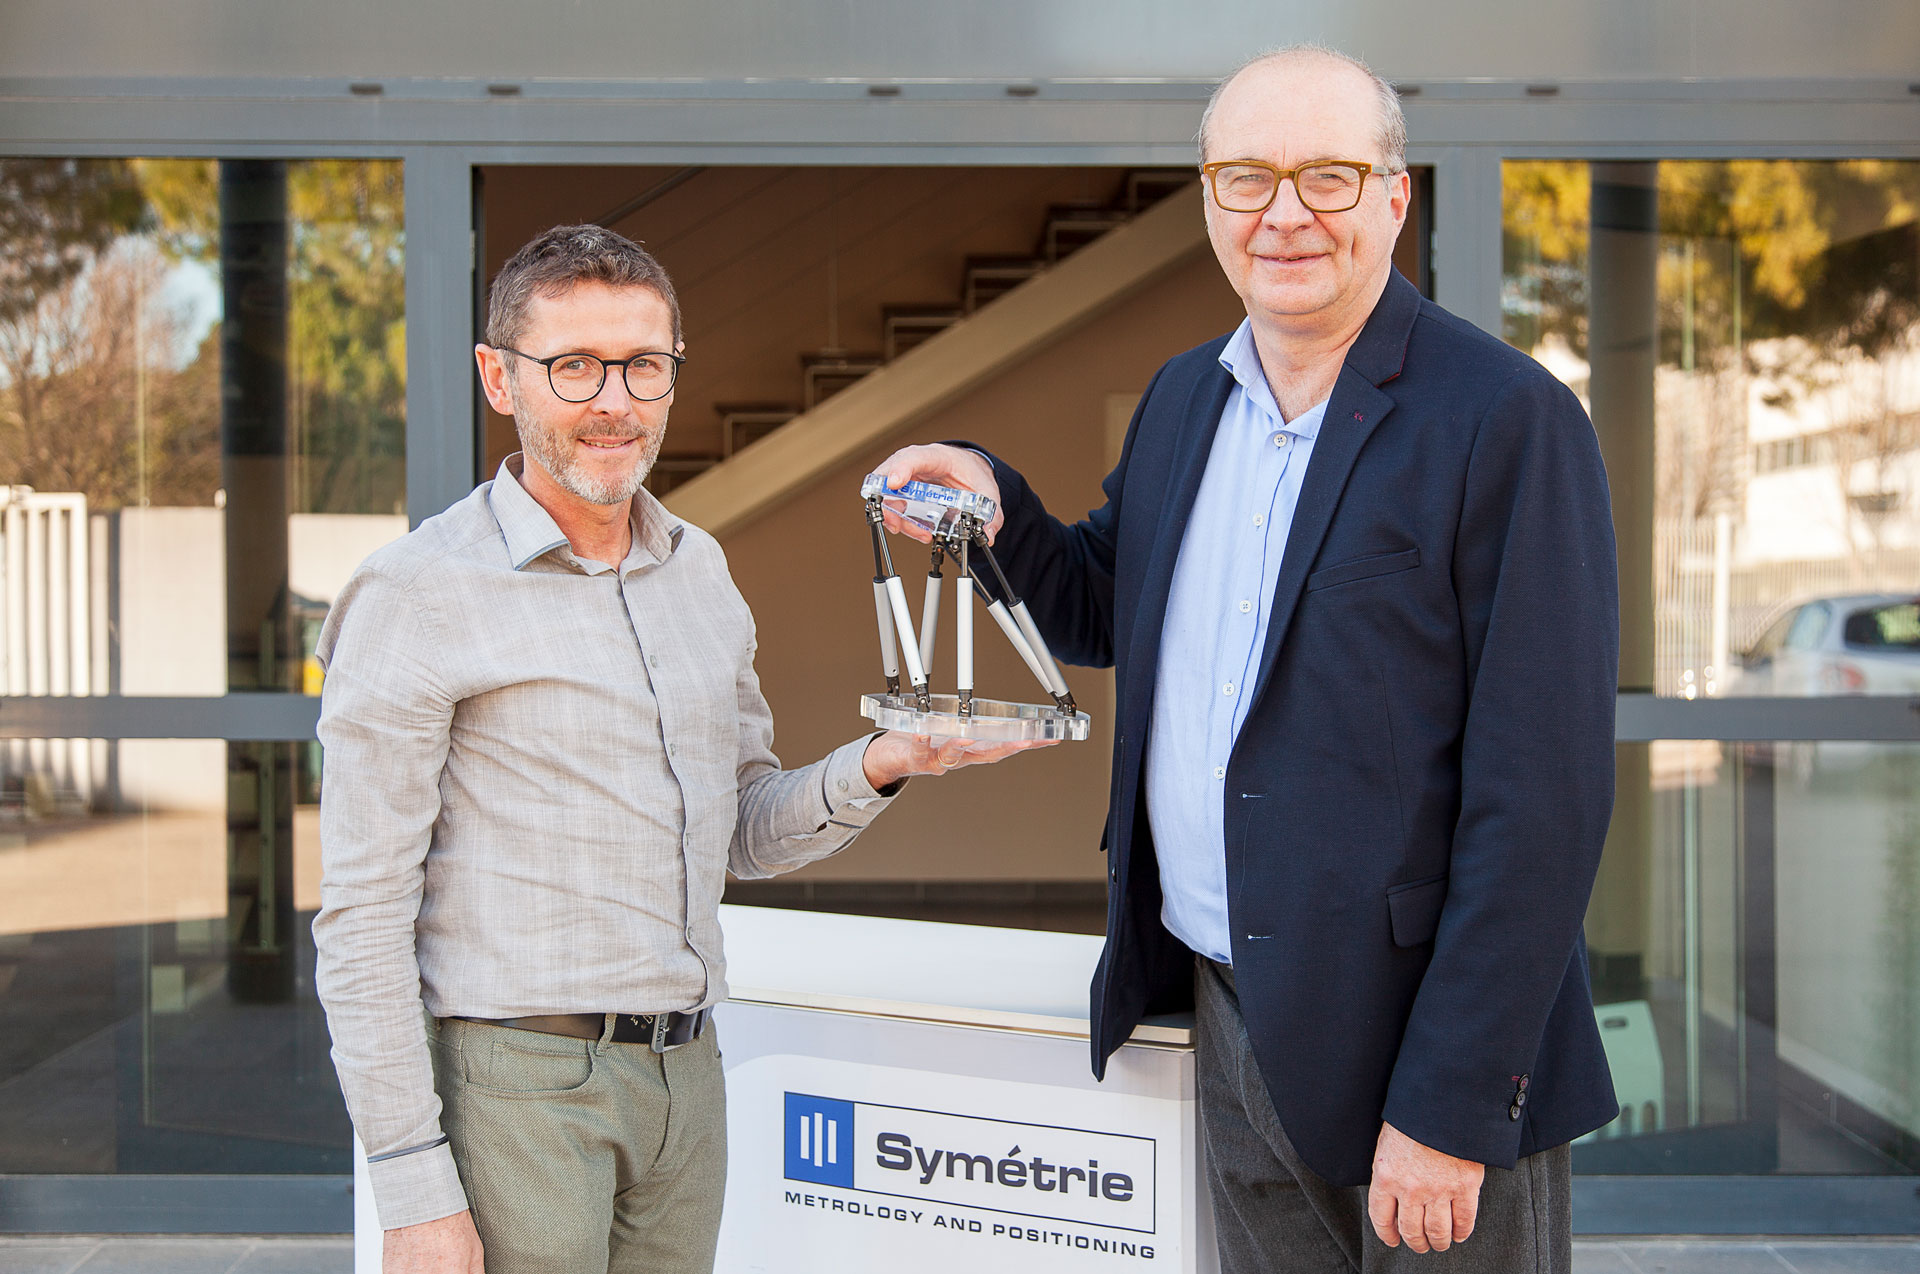 Who are we? Symétrie experts in metrology and positioning